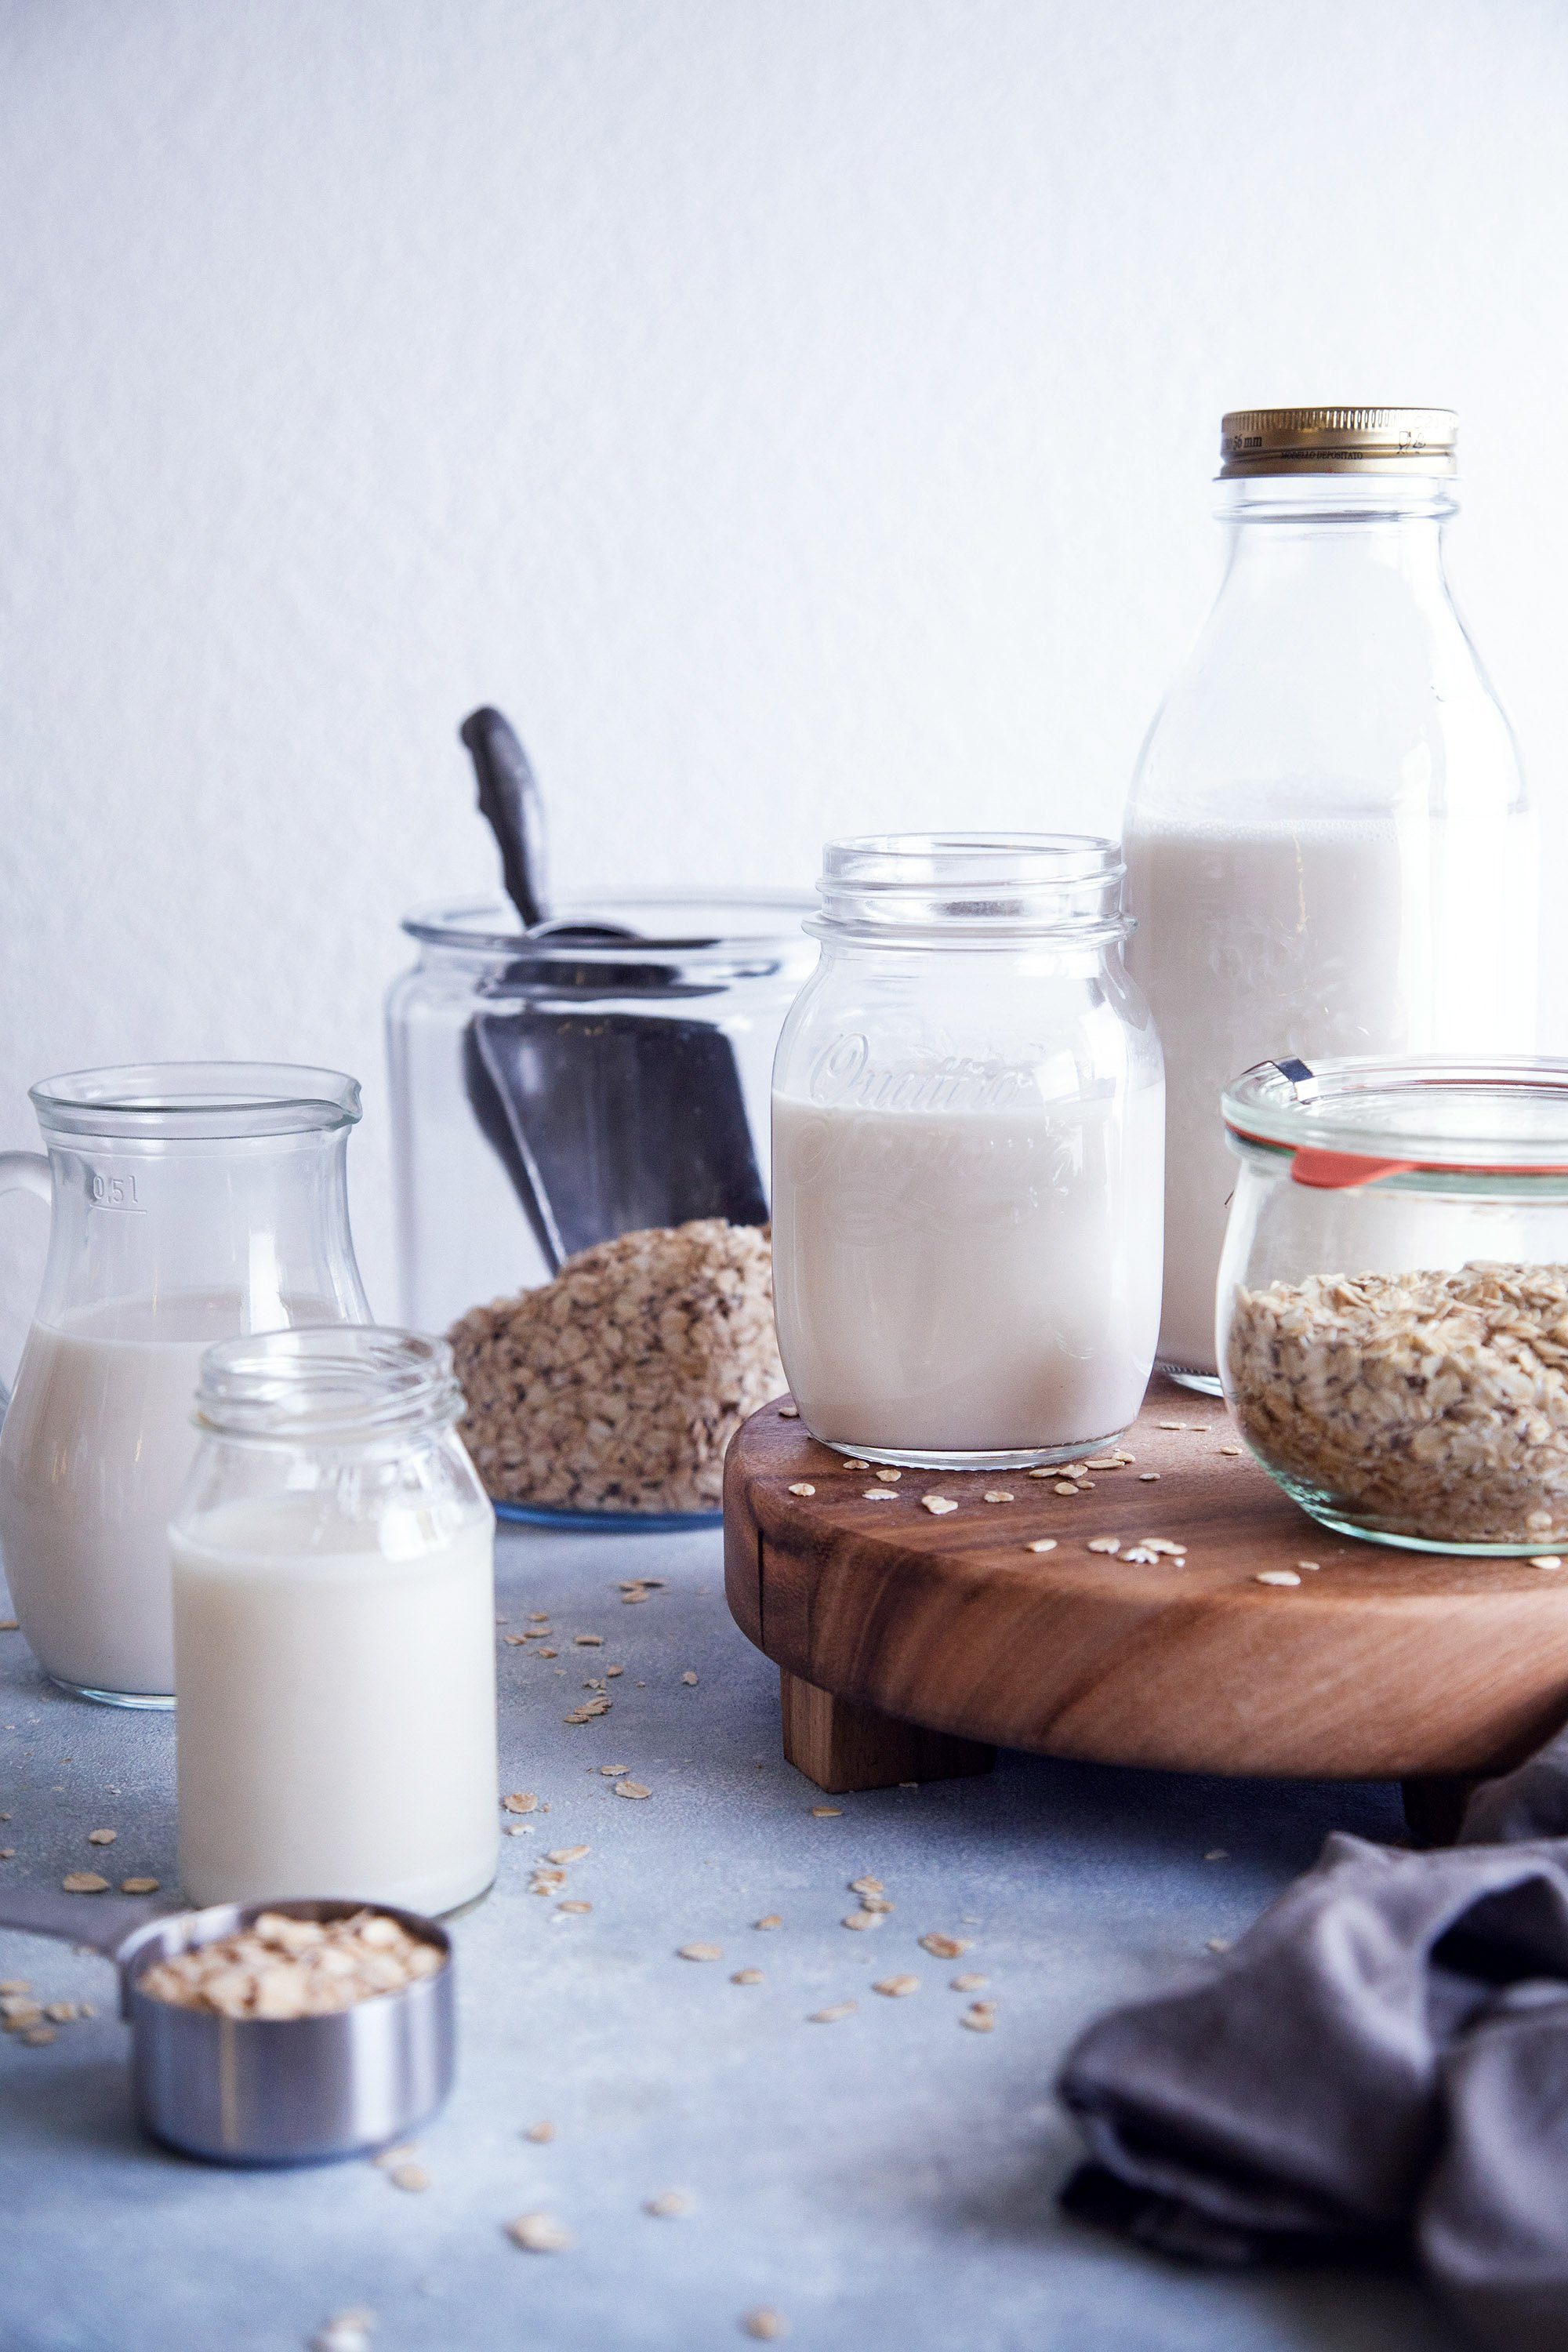 Homemade Oat Milk | Vegan Friendly, Free of Dairy, Gluten, ad Refined Sugar